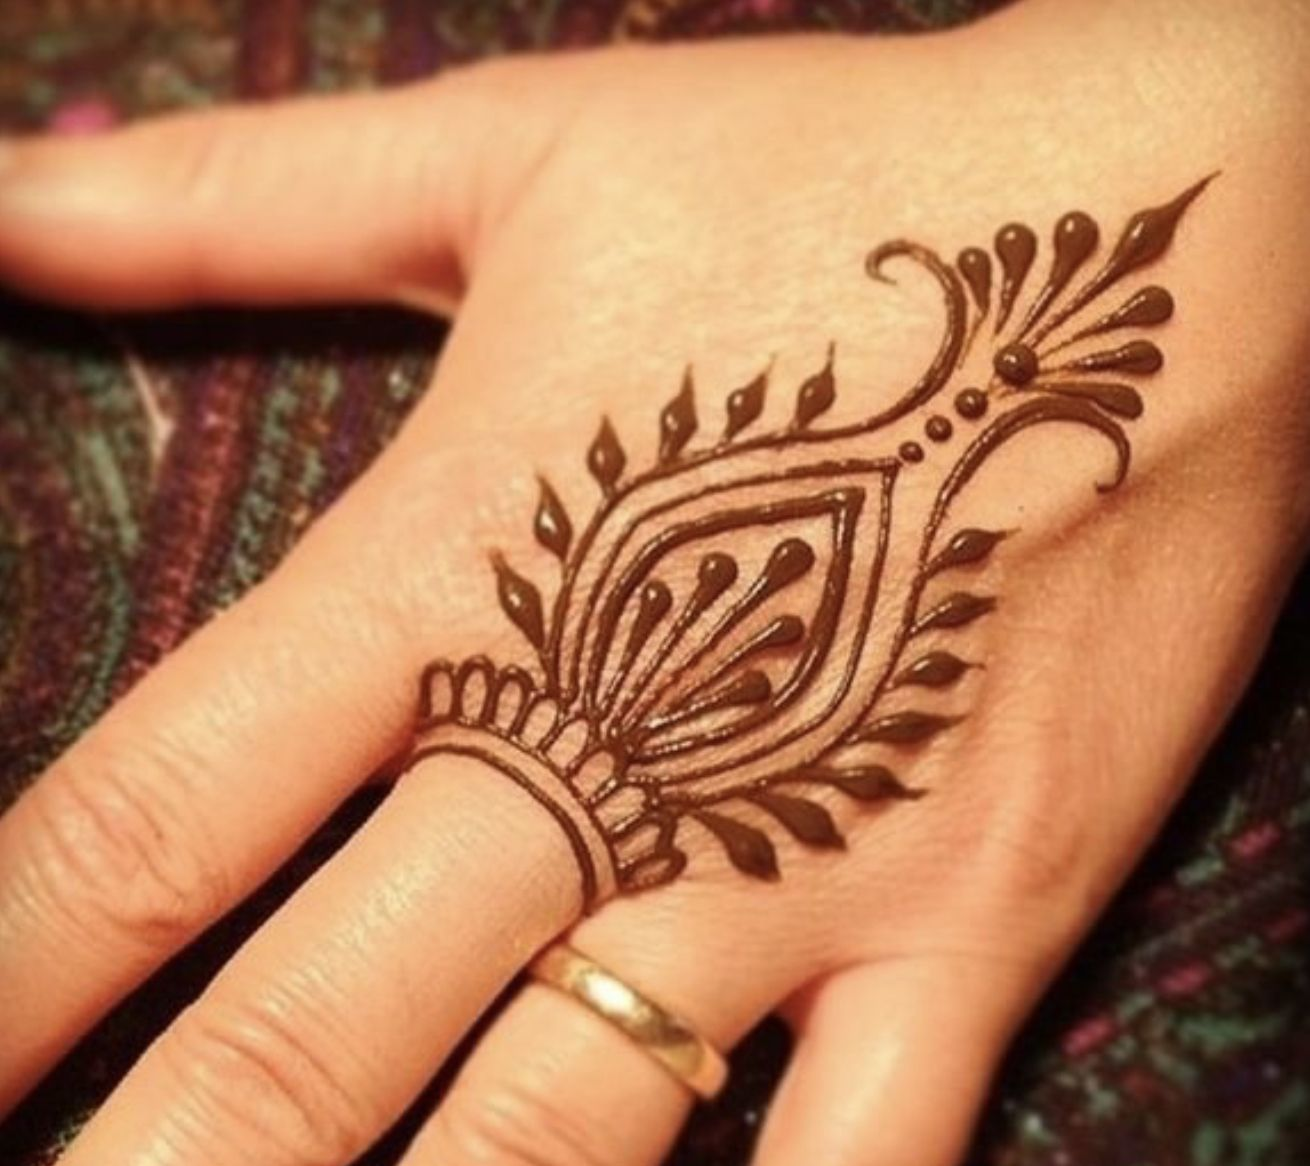 Hi Everyone This Is My First Time Posting So I Don T Really Know What To Say I Really Hope You Like Th Simple Henna Tattoo Henna Designs Henna Tattoo Designs